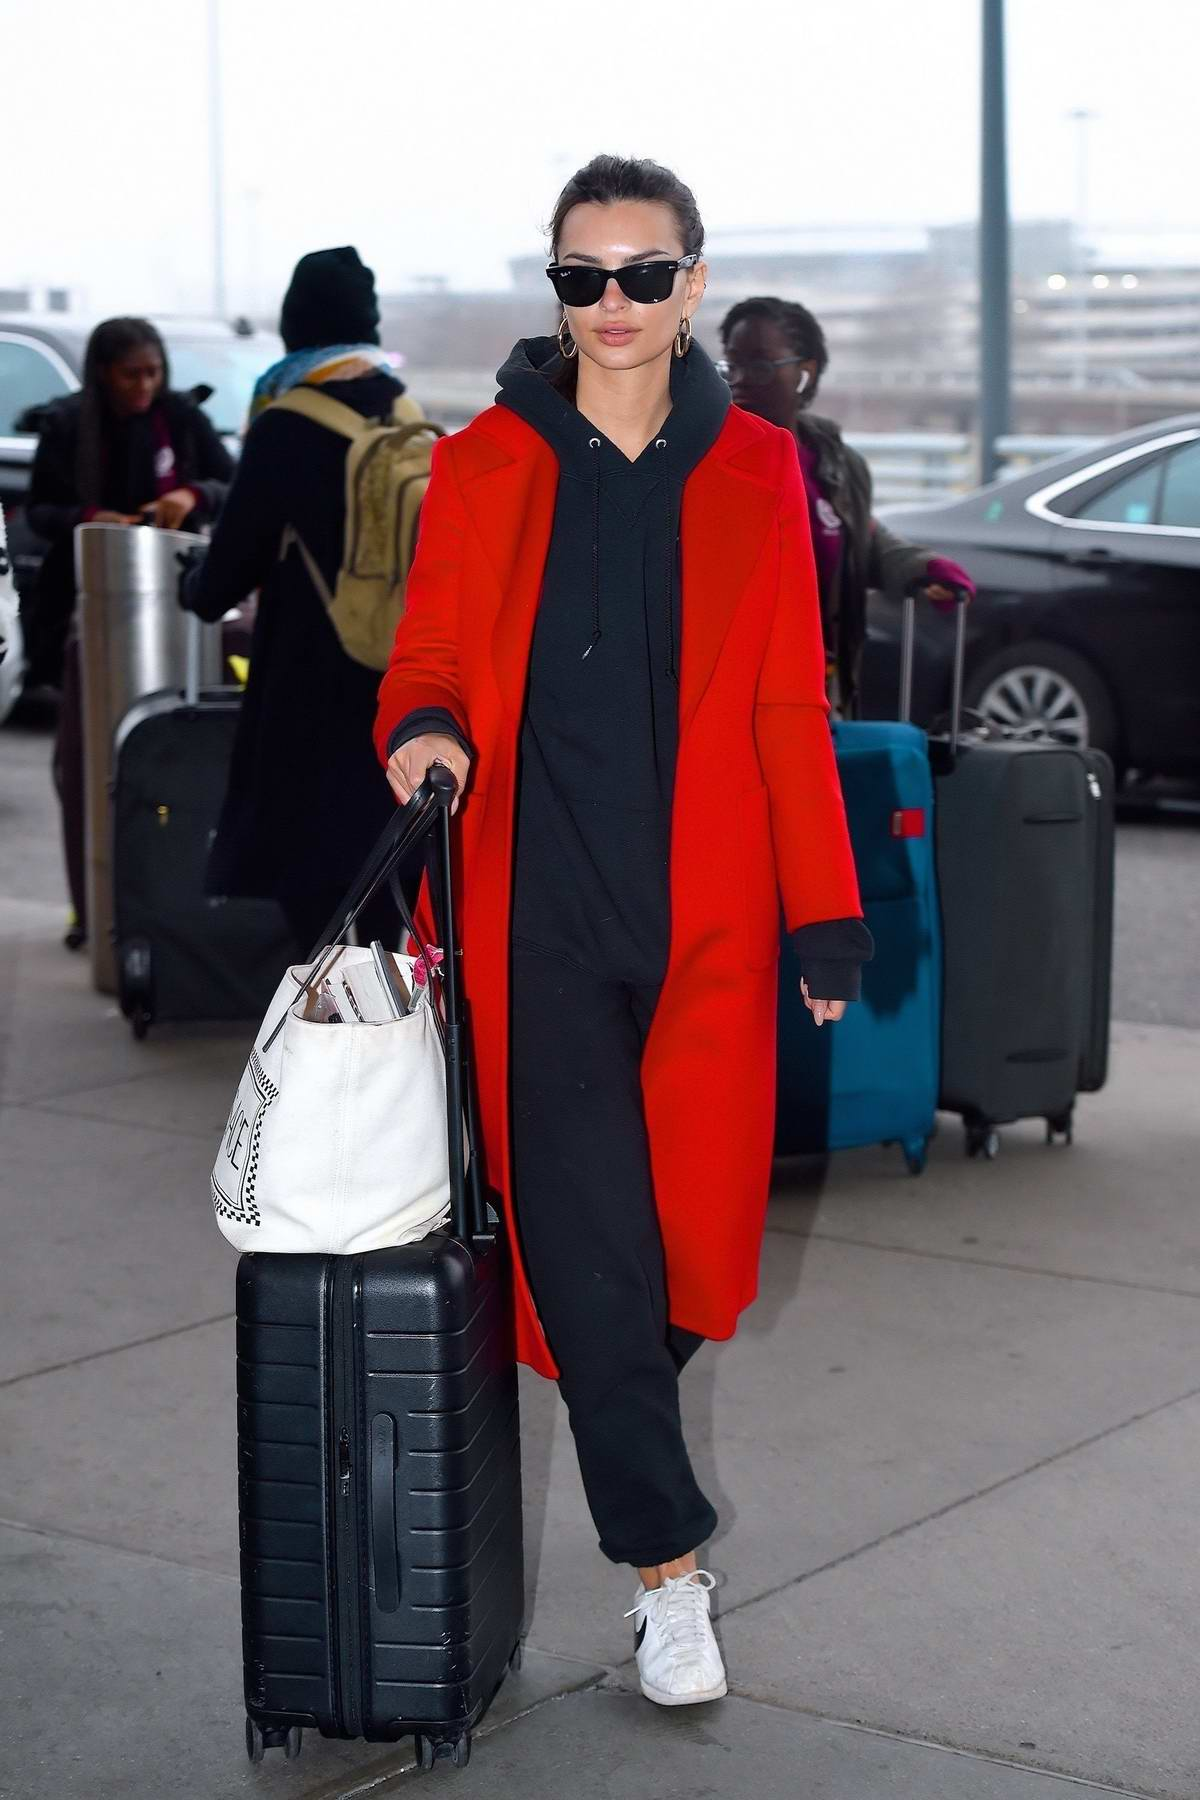 Emily Ratajkowski looks comfy yet stylish in a hoodie and bright red trench coat as she arrives at JFK airport in New York City